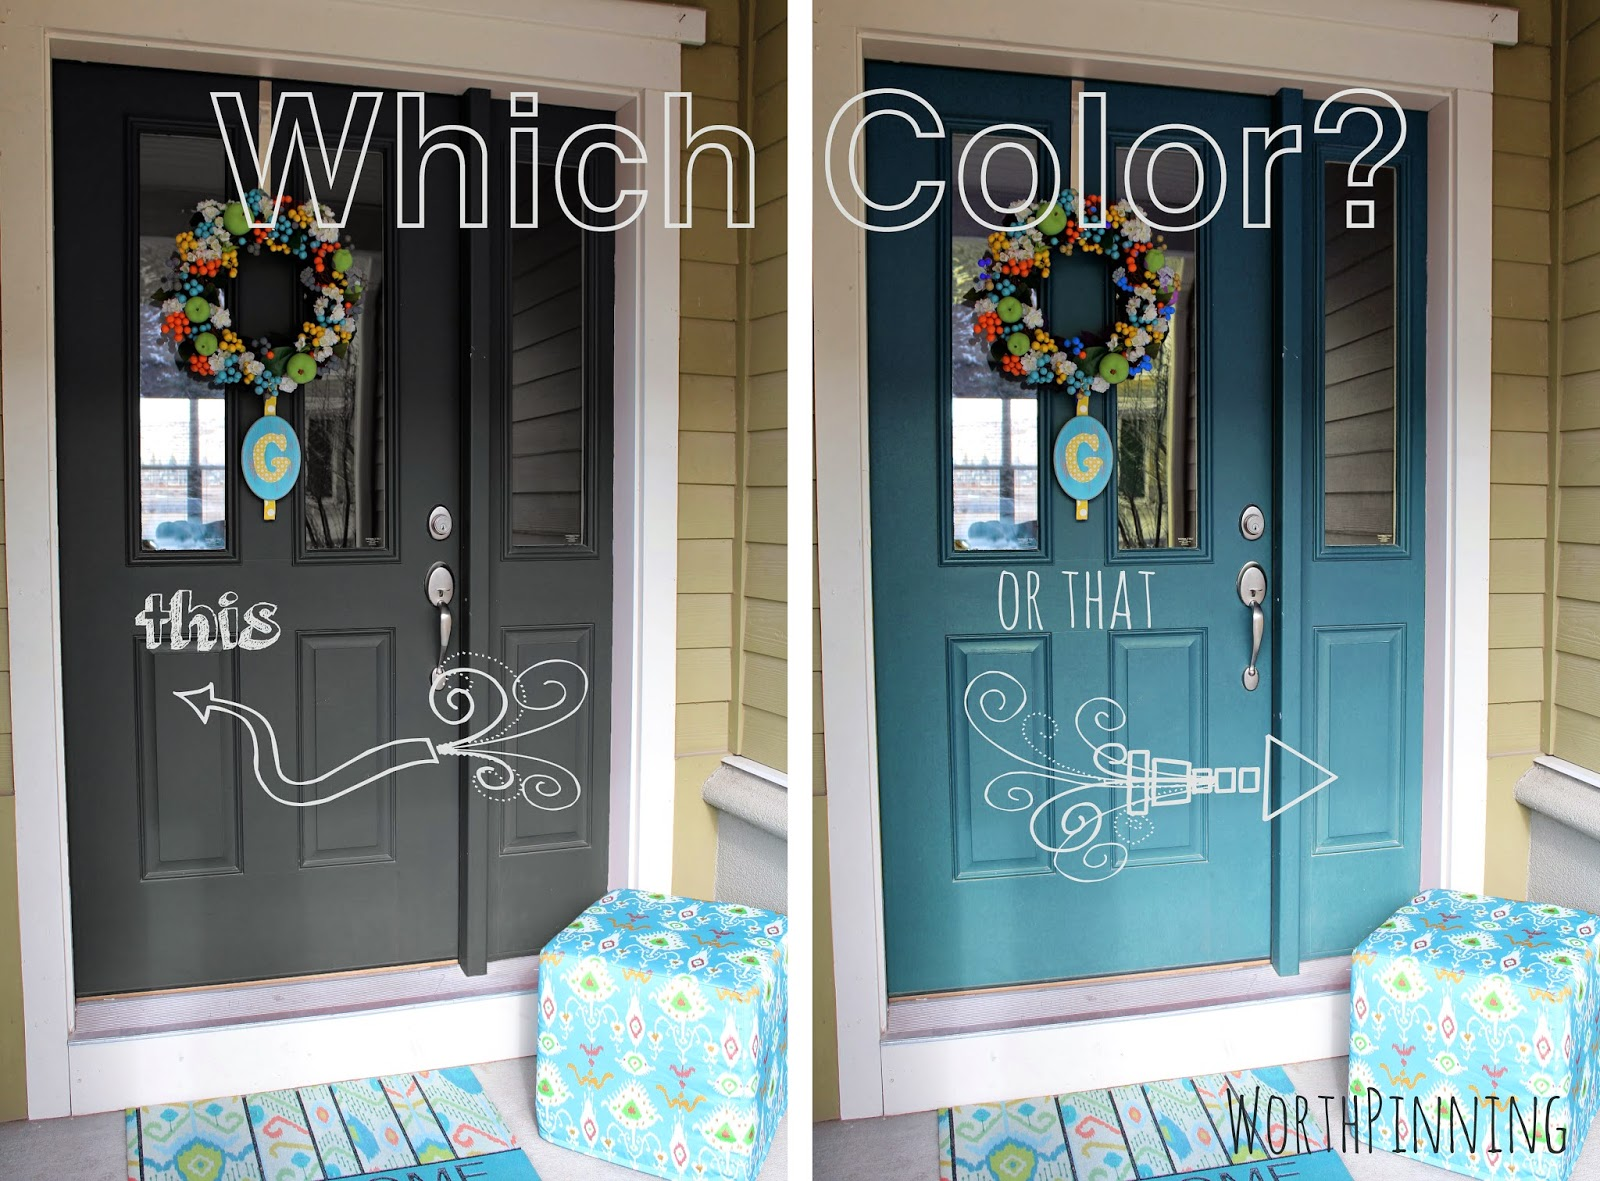 Worth Pinning: Gray Door or Teal Door? How about both?